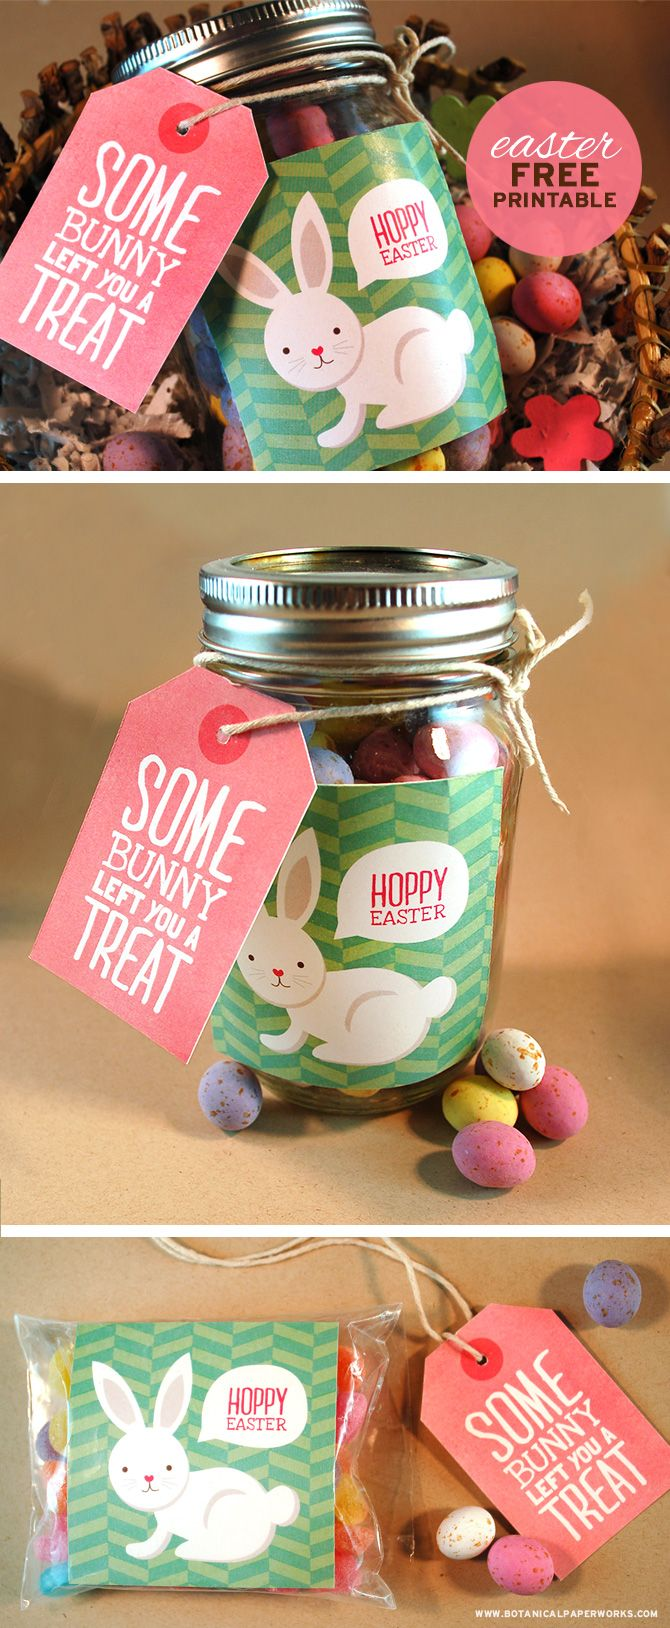 192 best easter gift ideas images on pinterest easter gift these adorable free printable are a great way to dress up your treat packages for friends and family this easter negle Choice Image